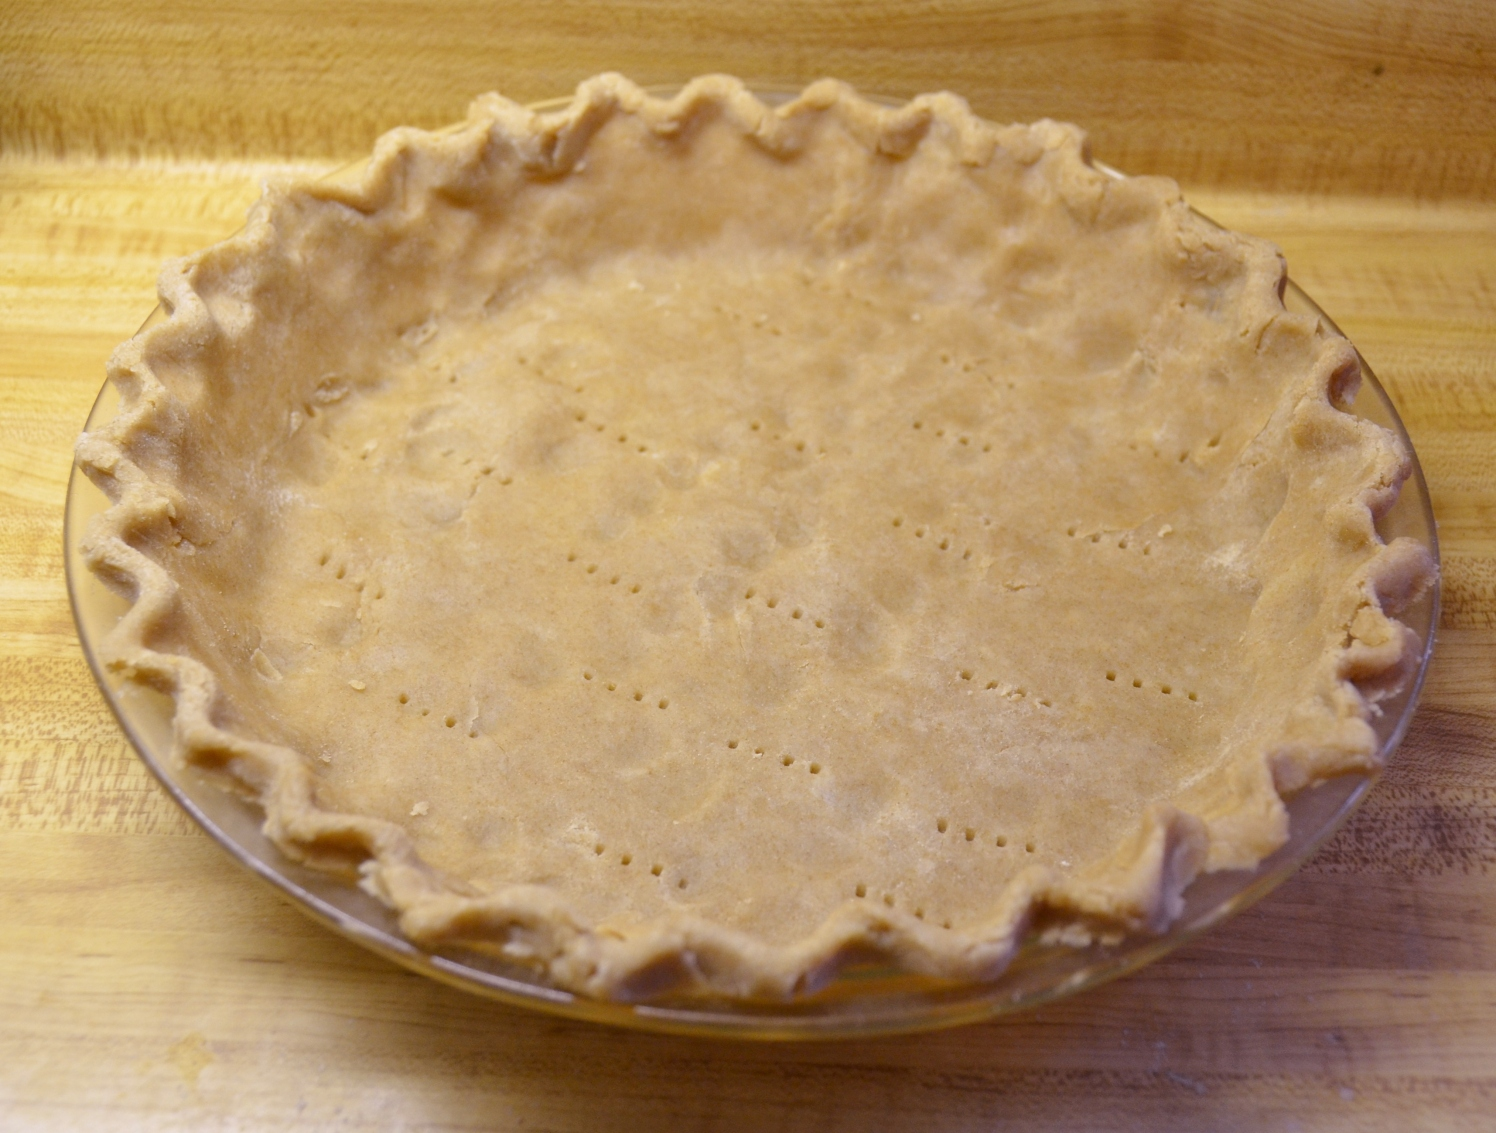 Whole Wheat Lard And Butter Pie Crust Birdsong Ridge Farm